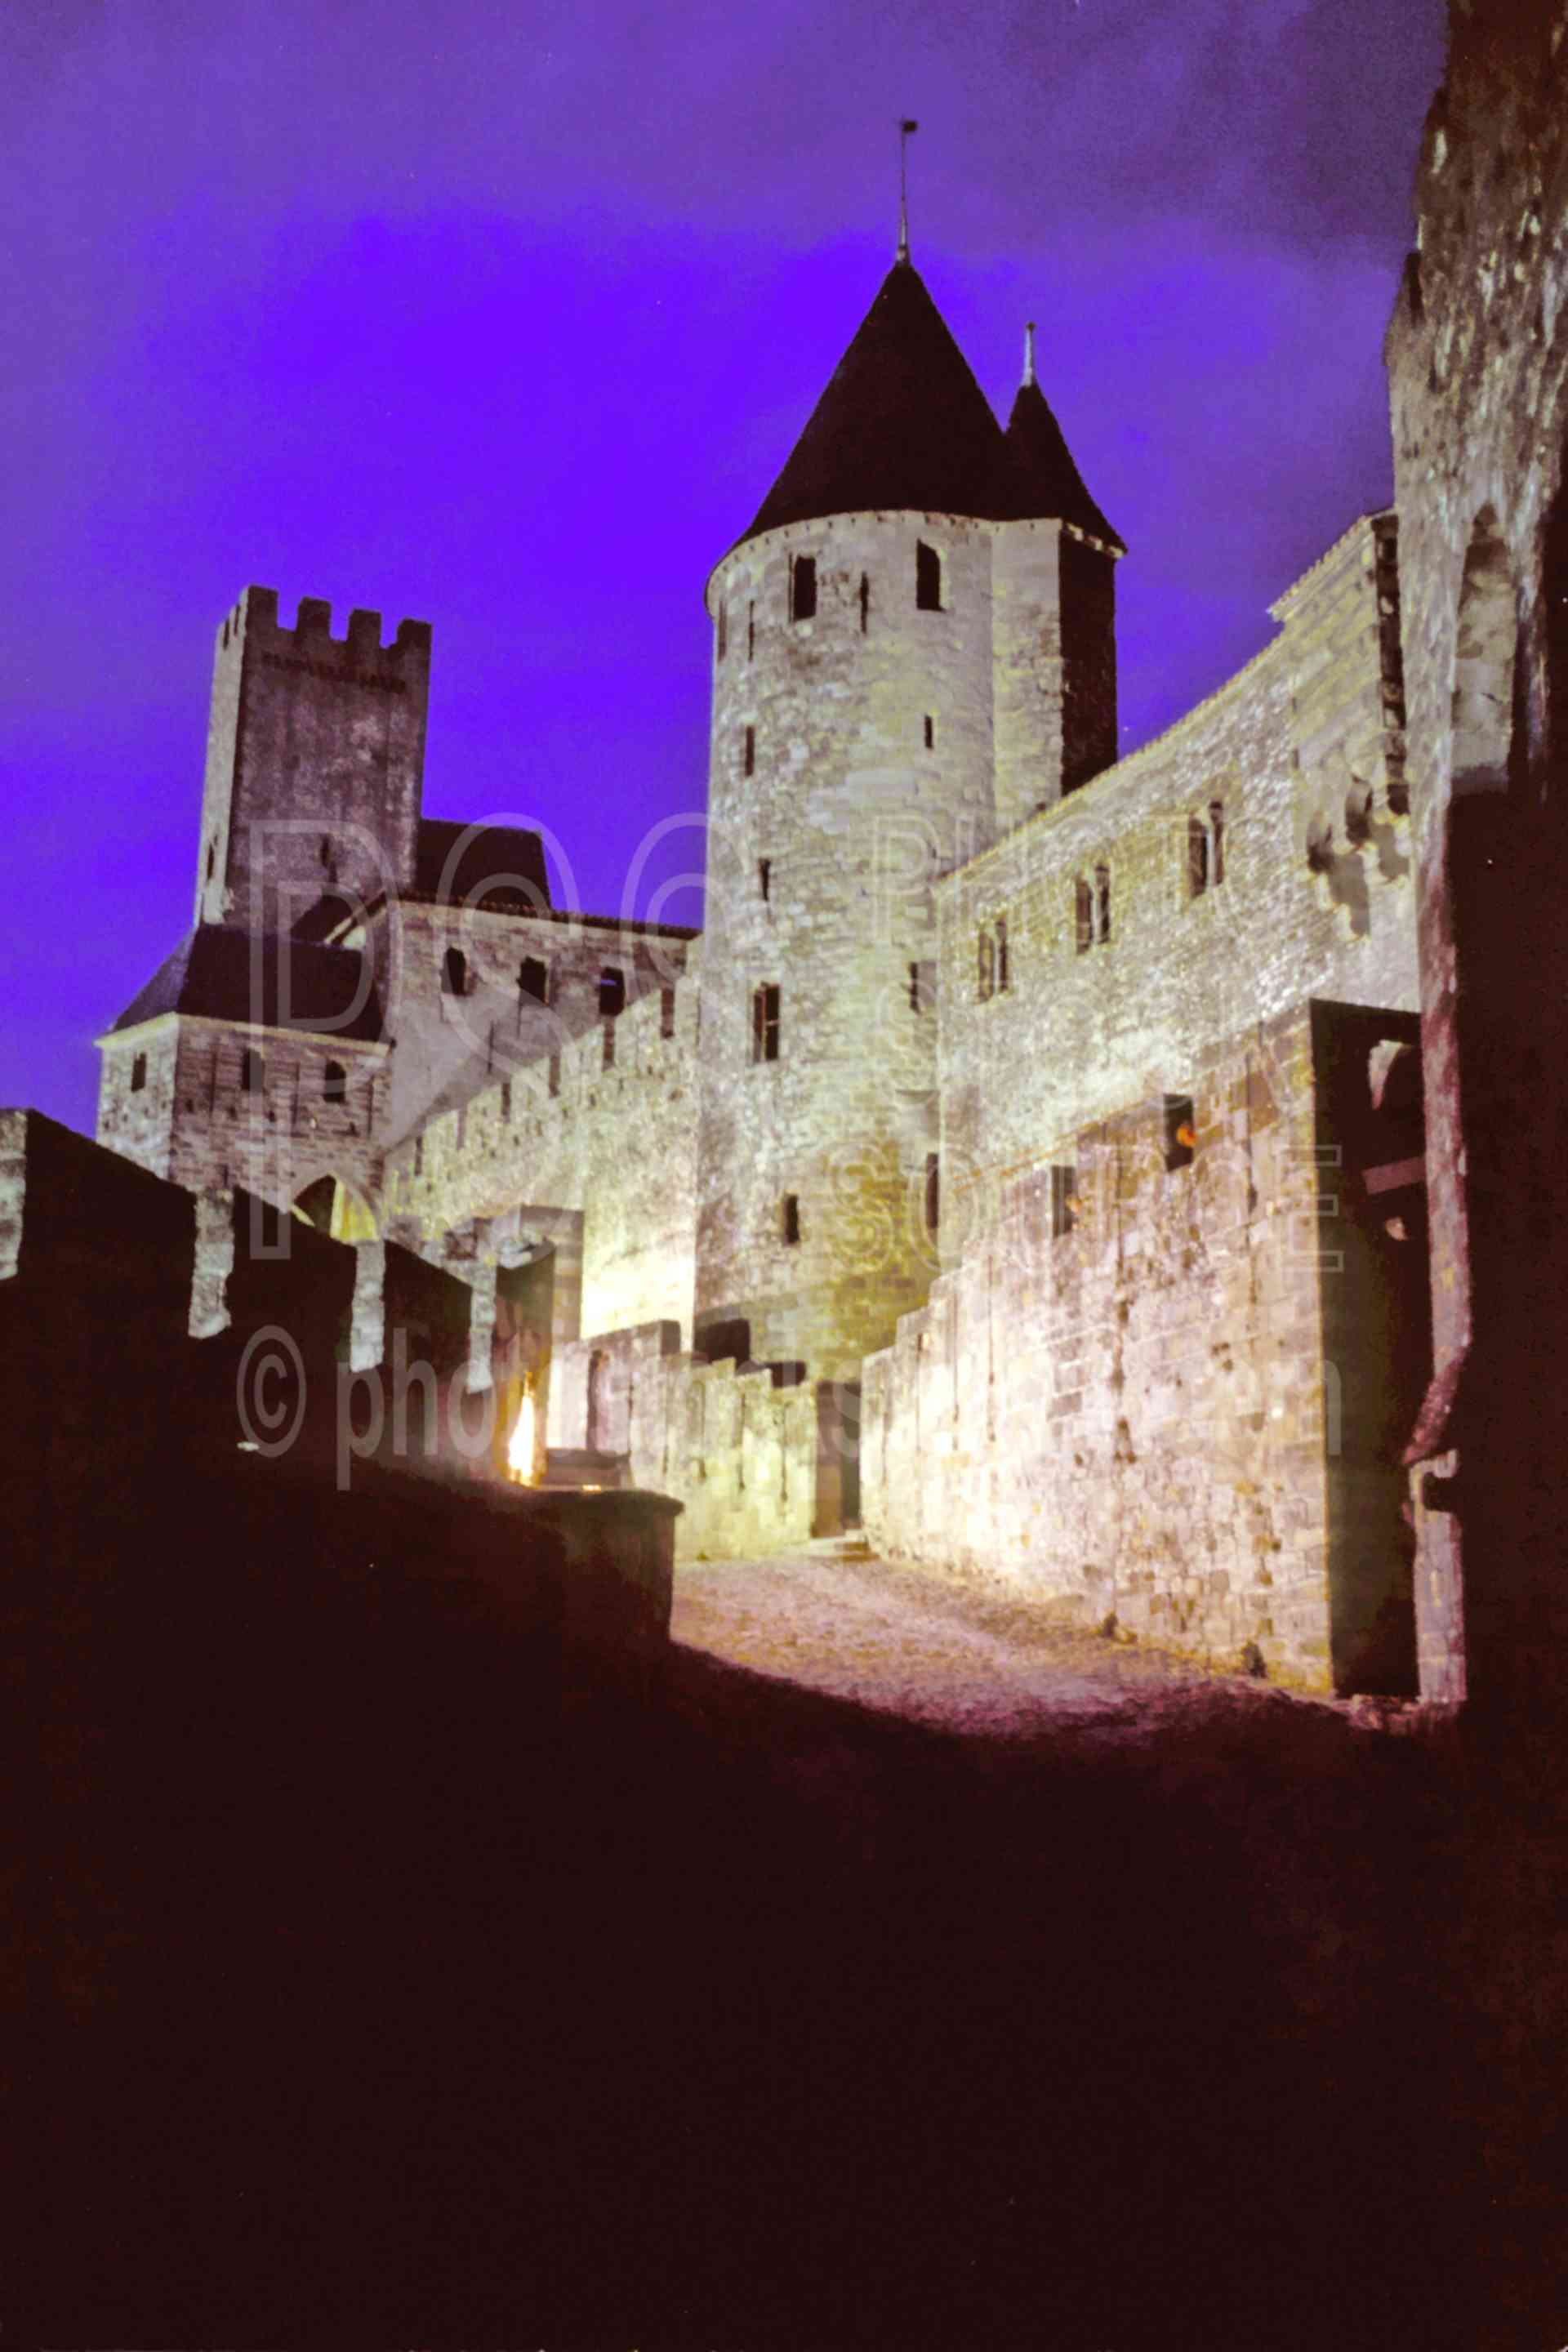 City at Night,castle,europe,medieval,night,road,wall,france castles